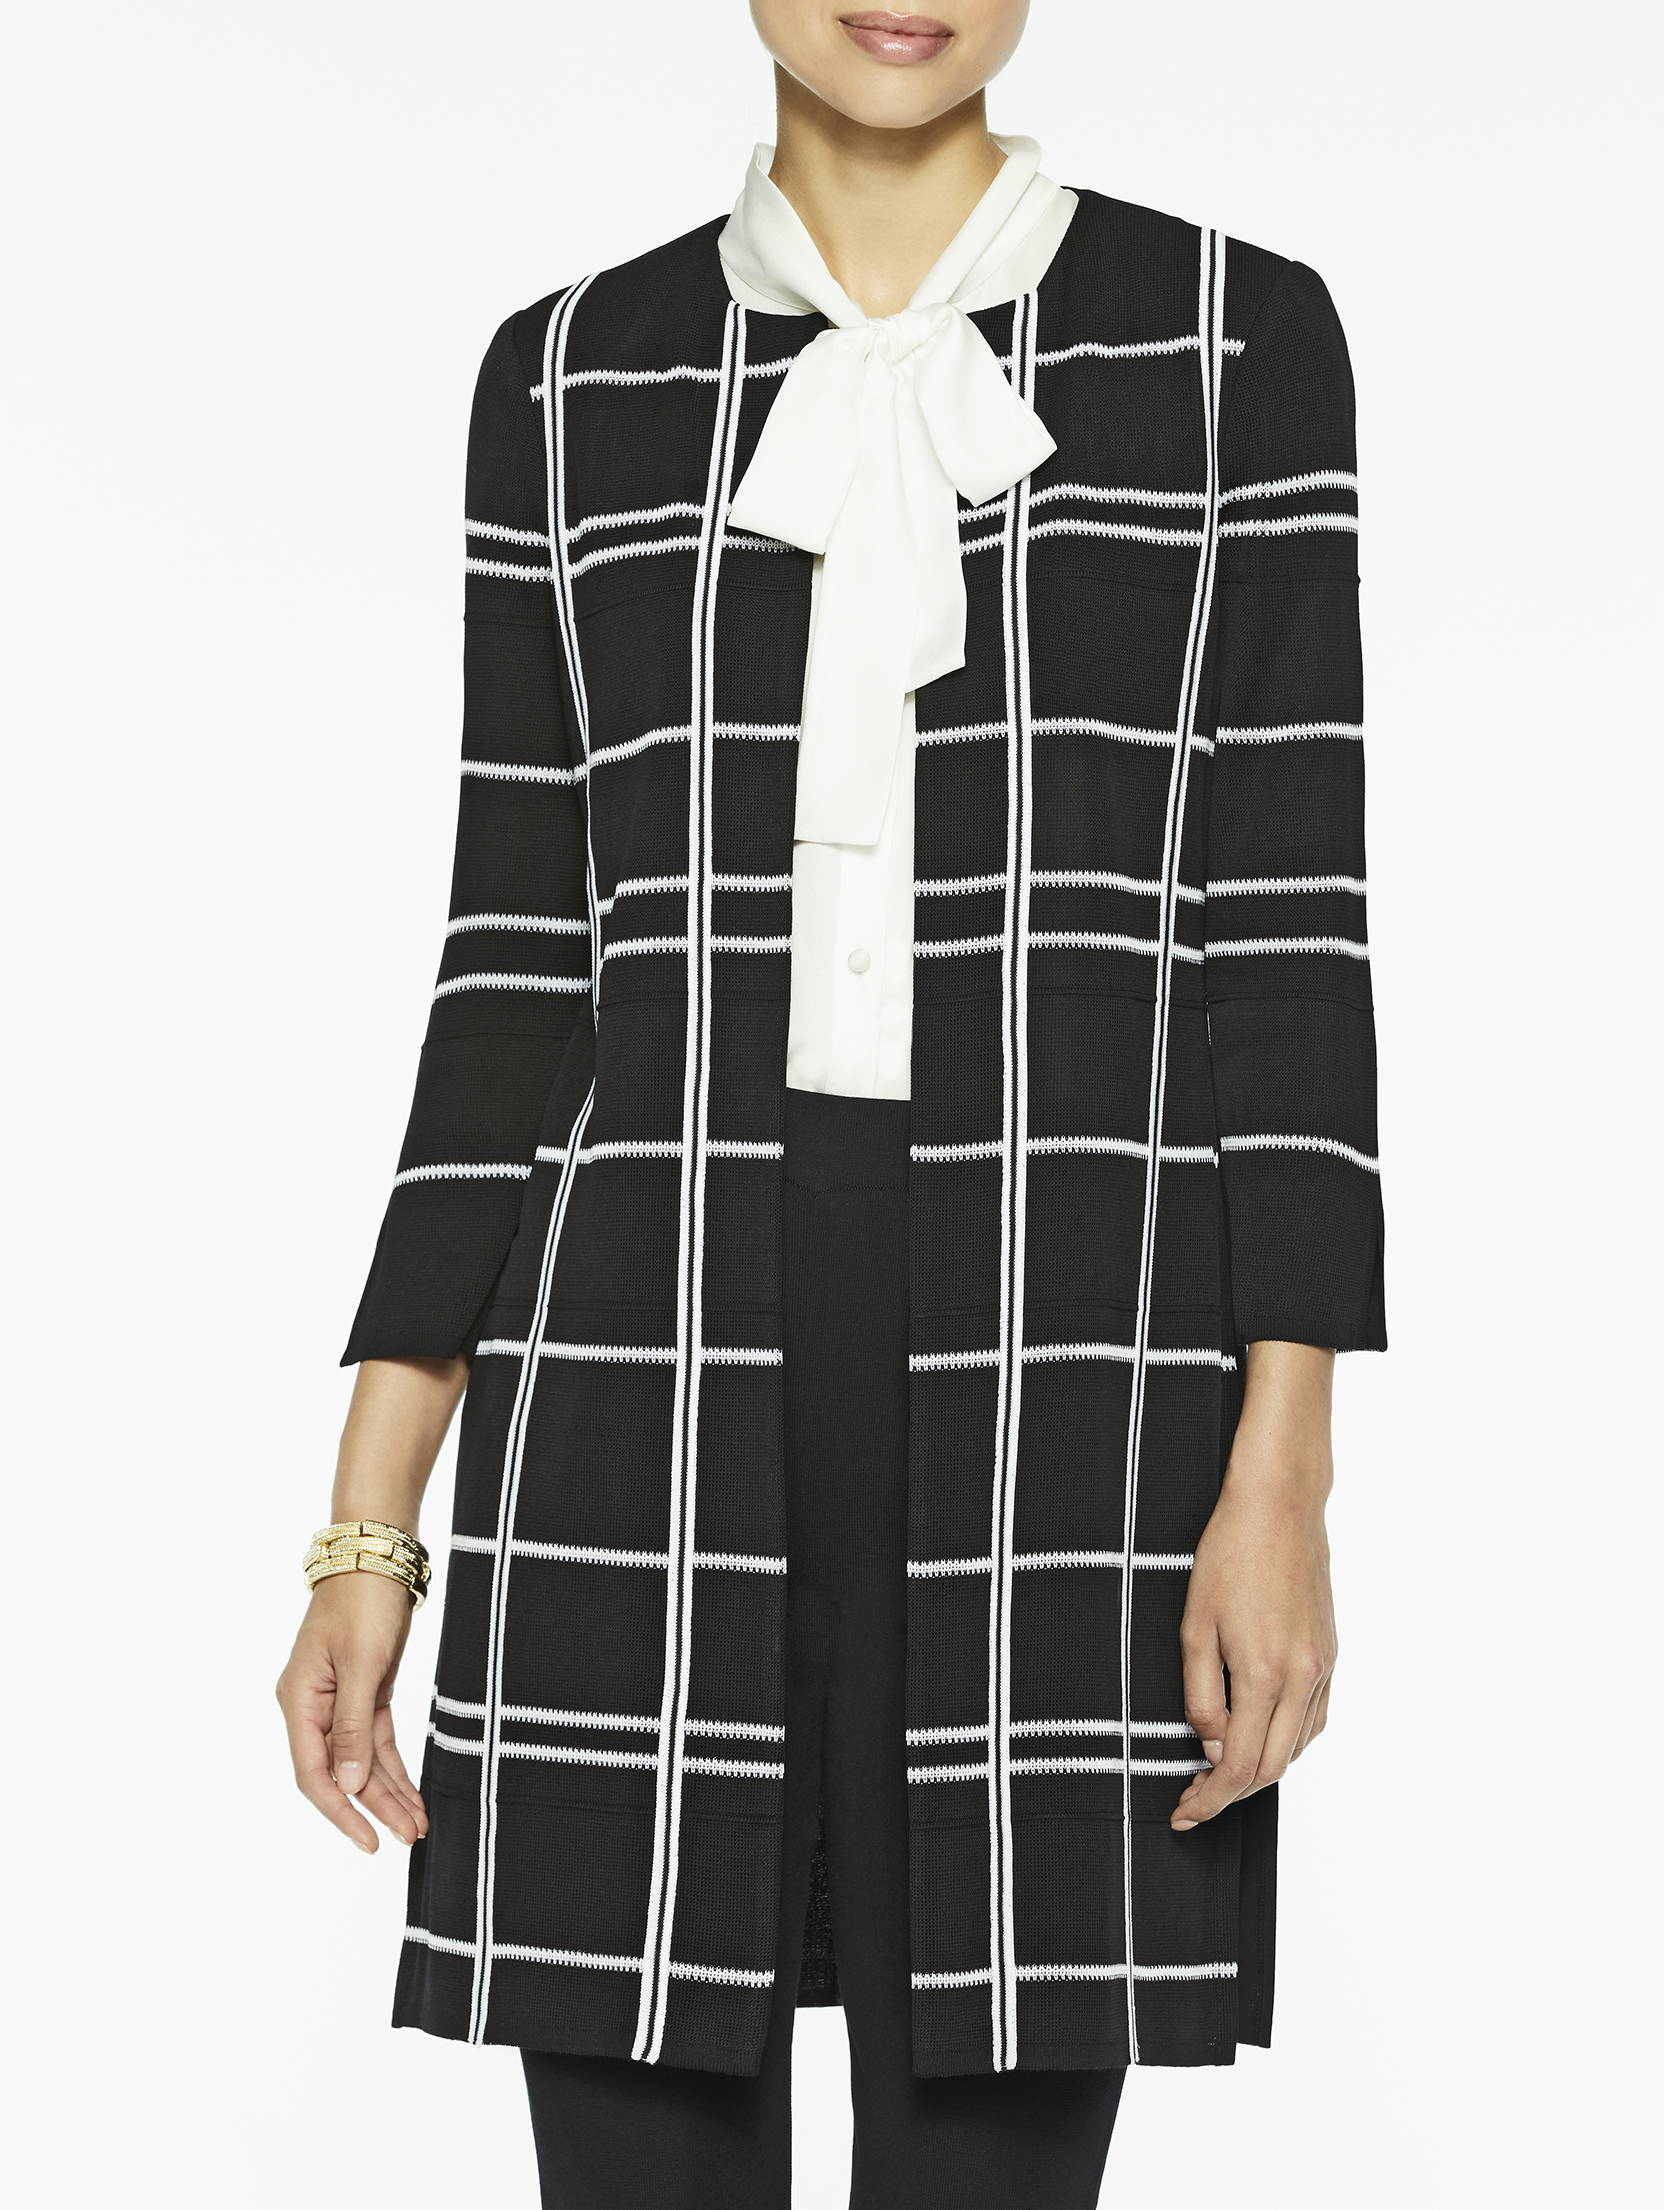 Graphic Plaid Knit Topper in Black and White